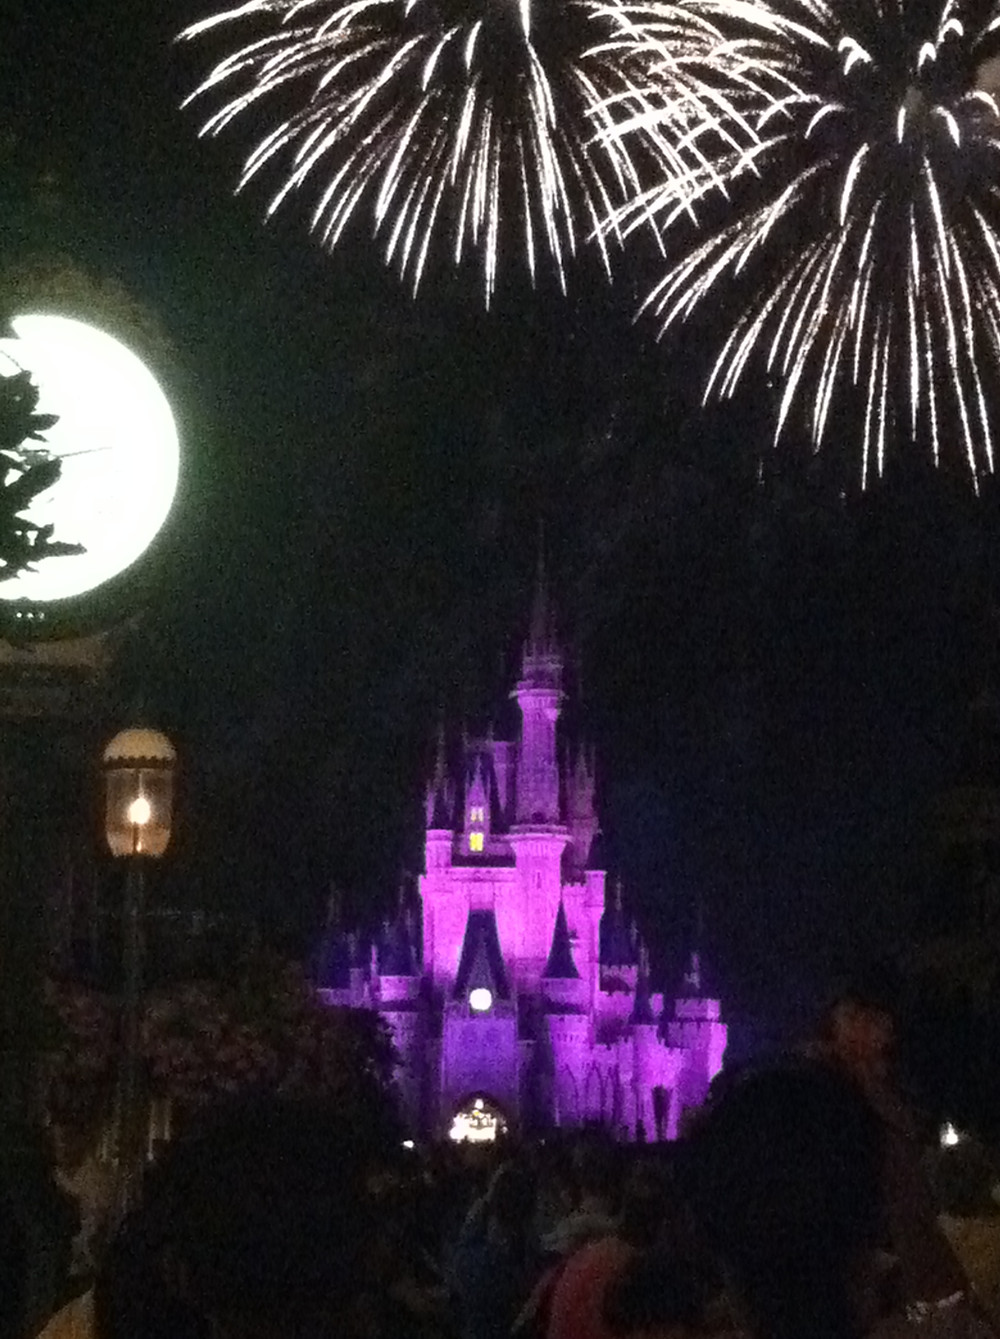 An old picture I took at Magic Kingdom